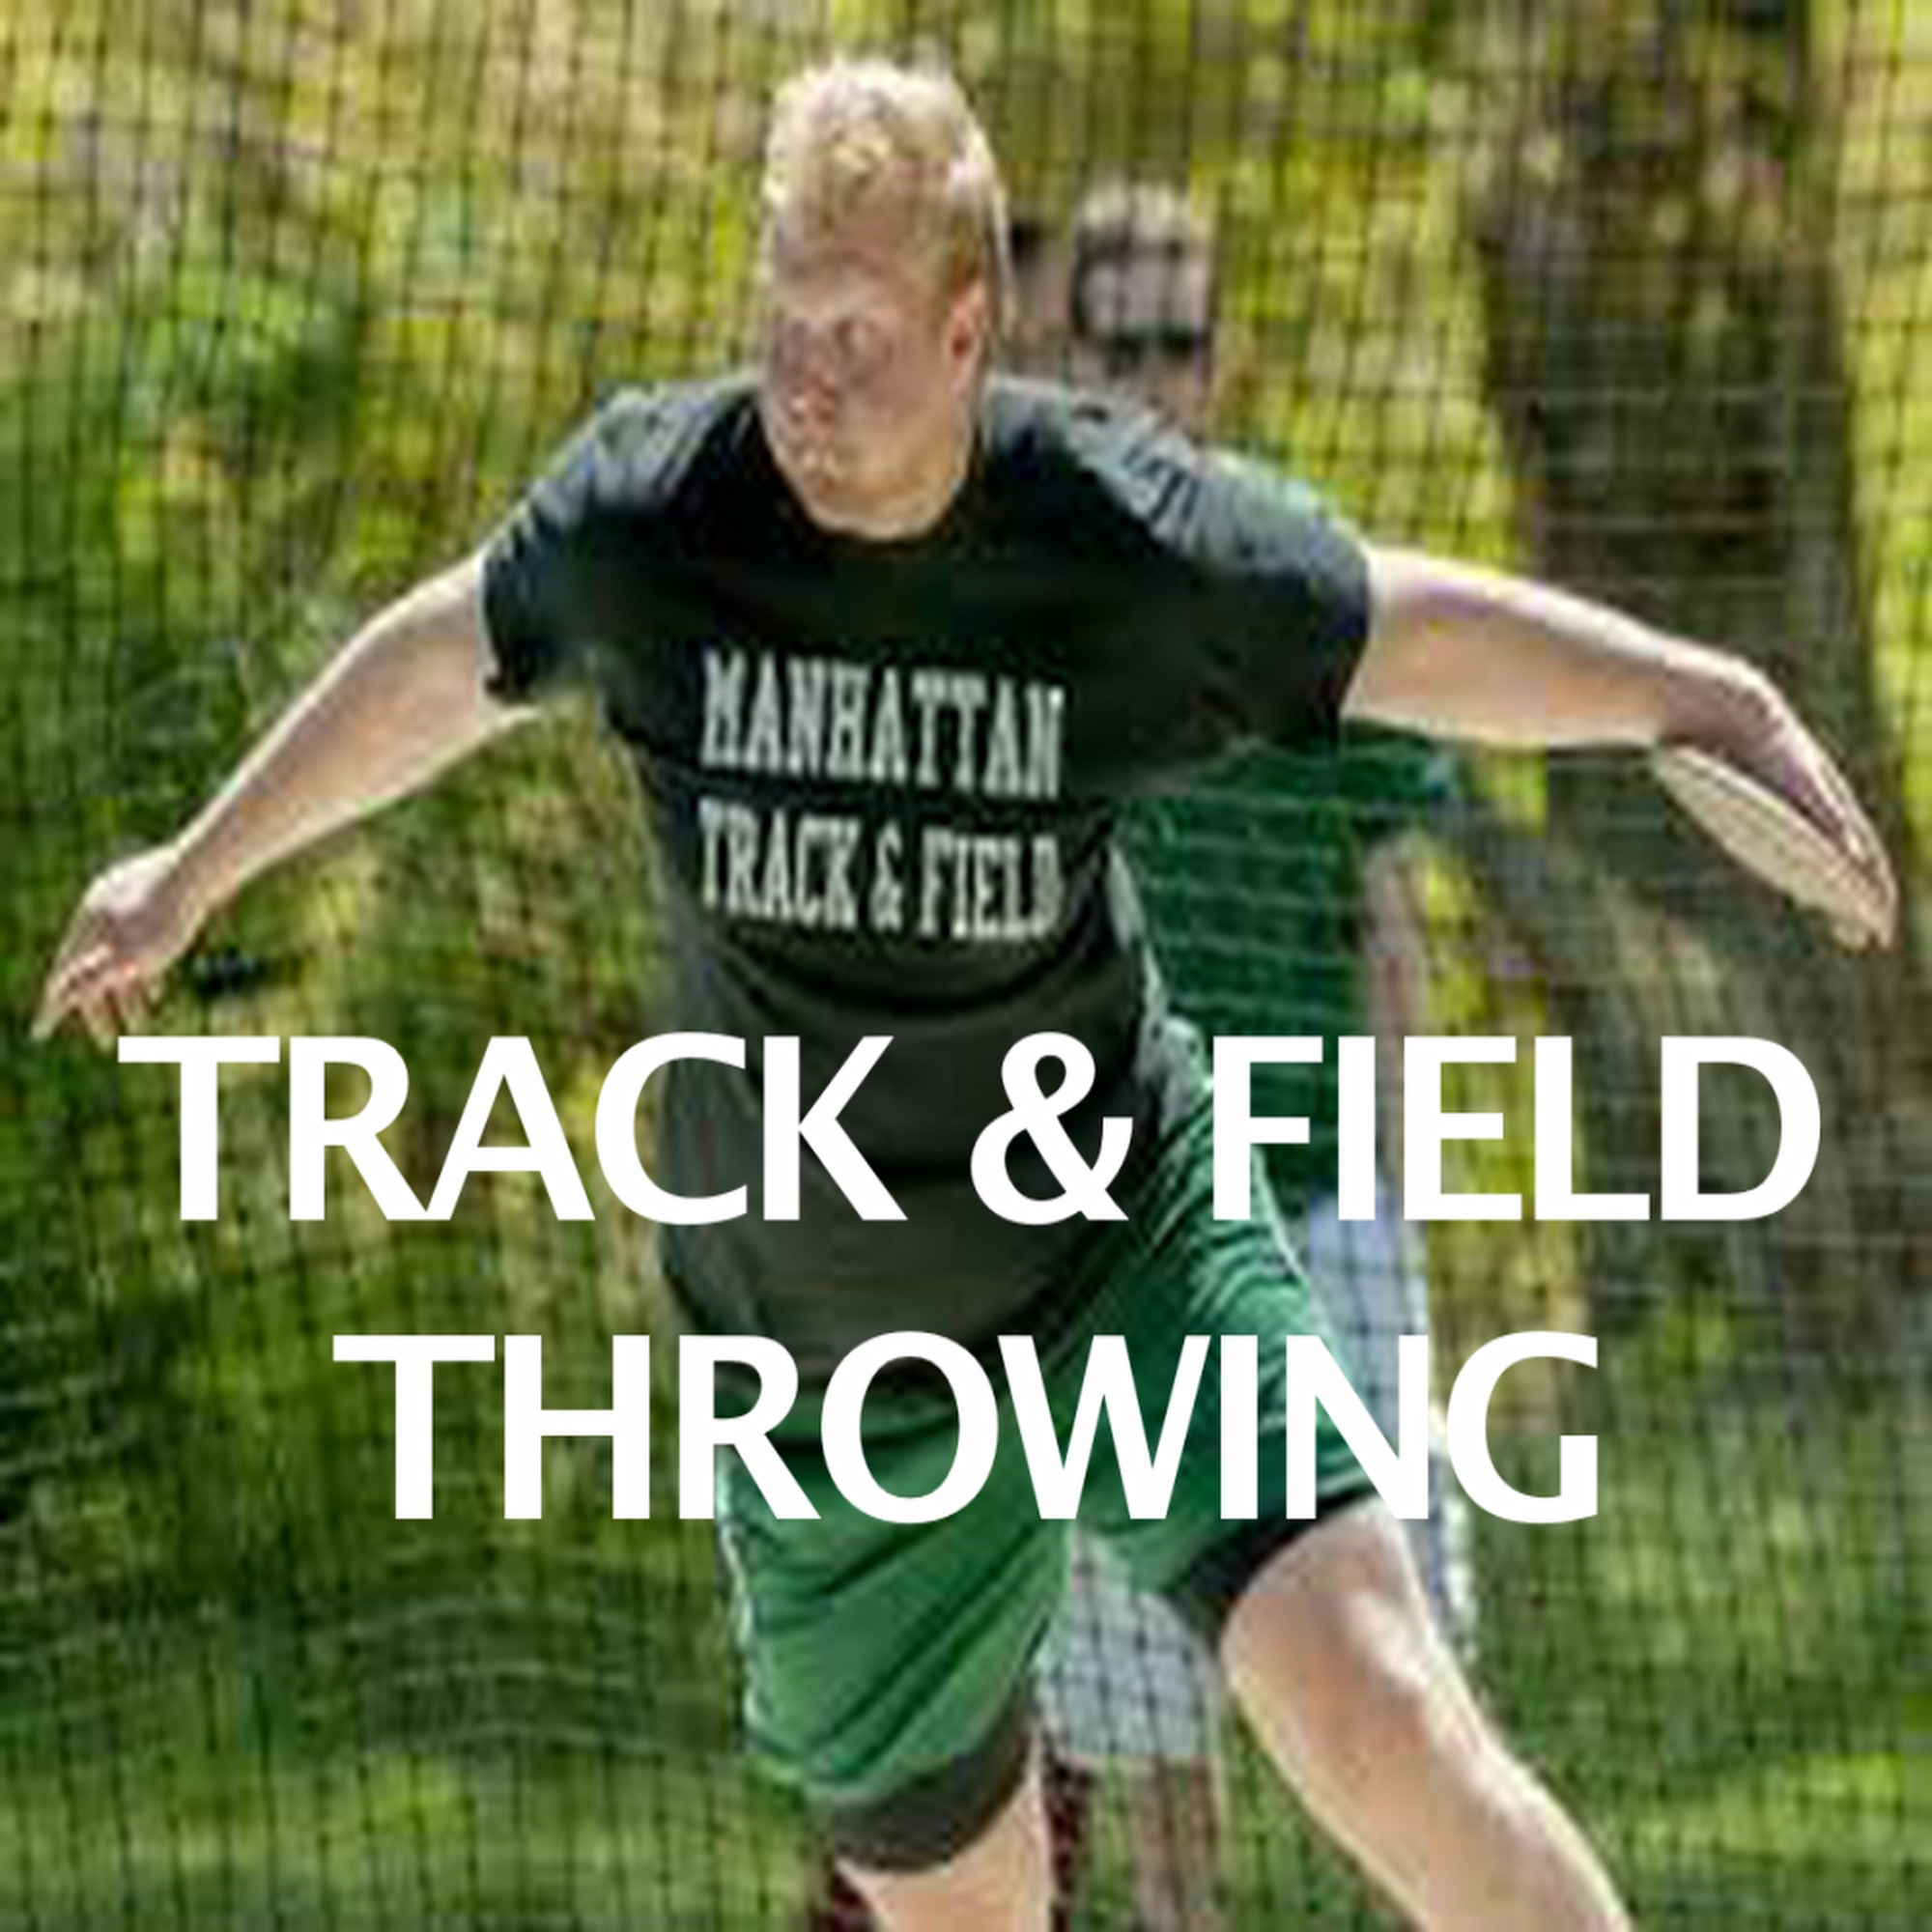 Track & Field Throwing.jpg